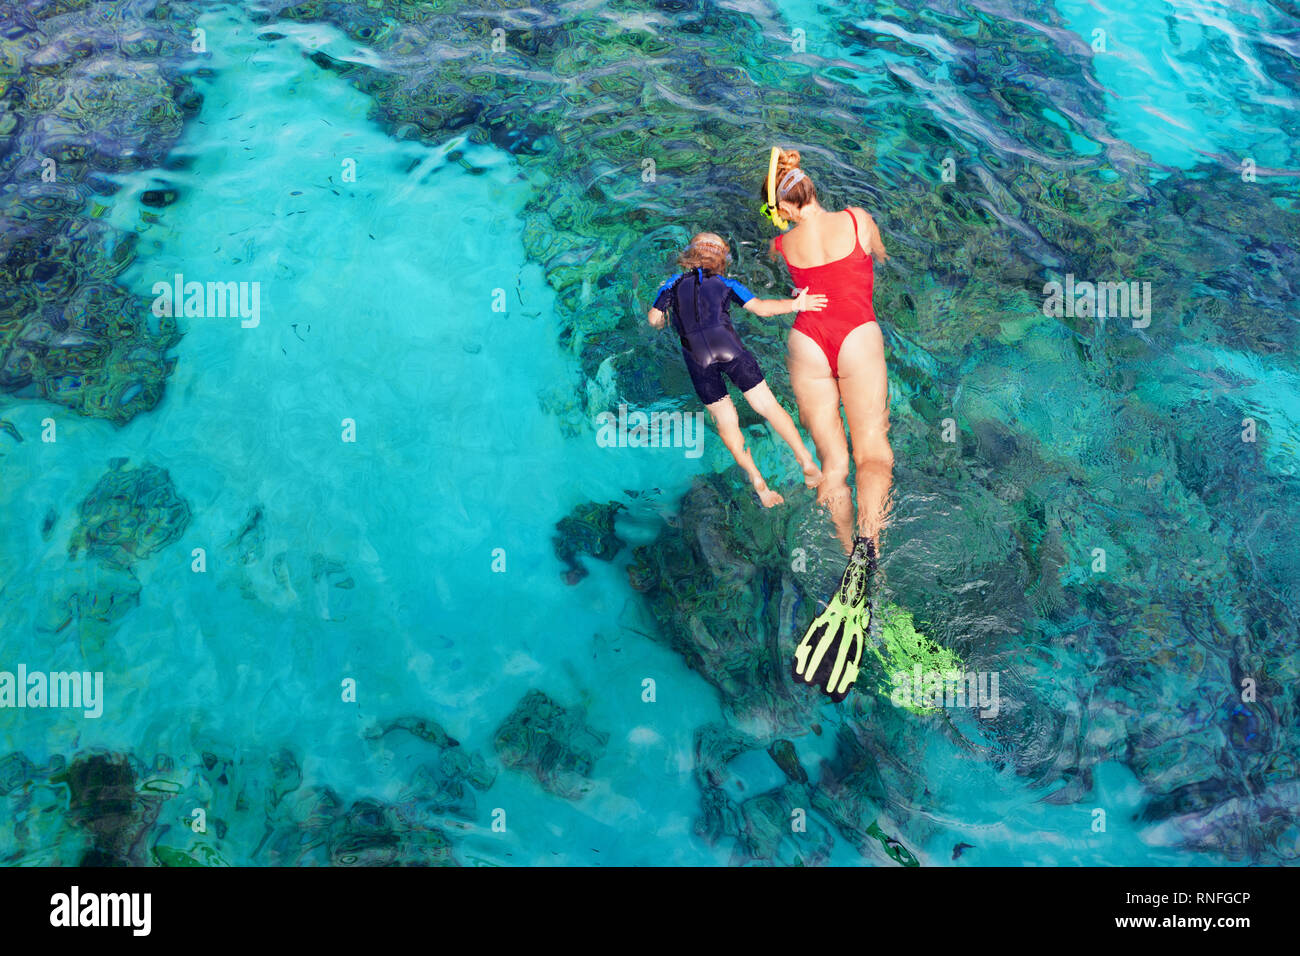 Happy family - mother, kid in snorkeling mask dive underwater, explore tropical fishes in coral reef sea pool. Travel active lifestyle, beach adventur - Stock Image